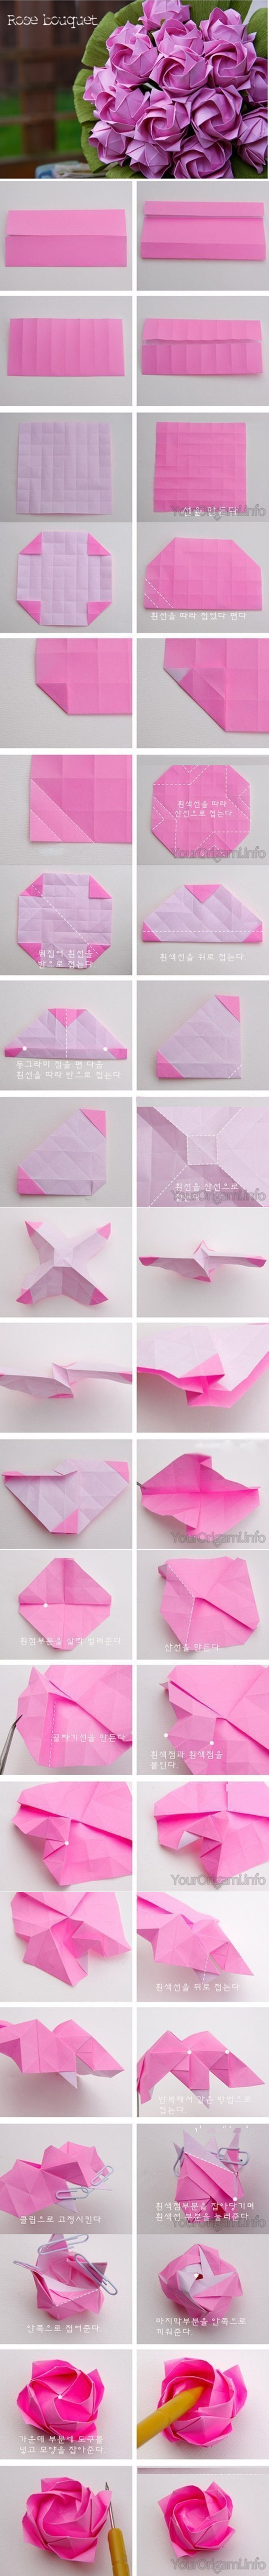 Origami Wedding - Origami for your Special Day | 6285x656